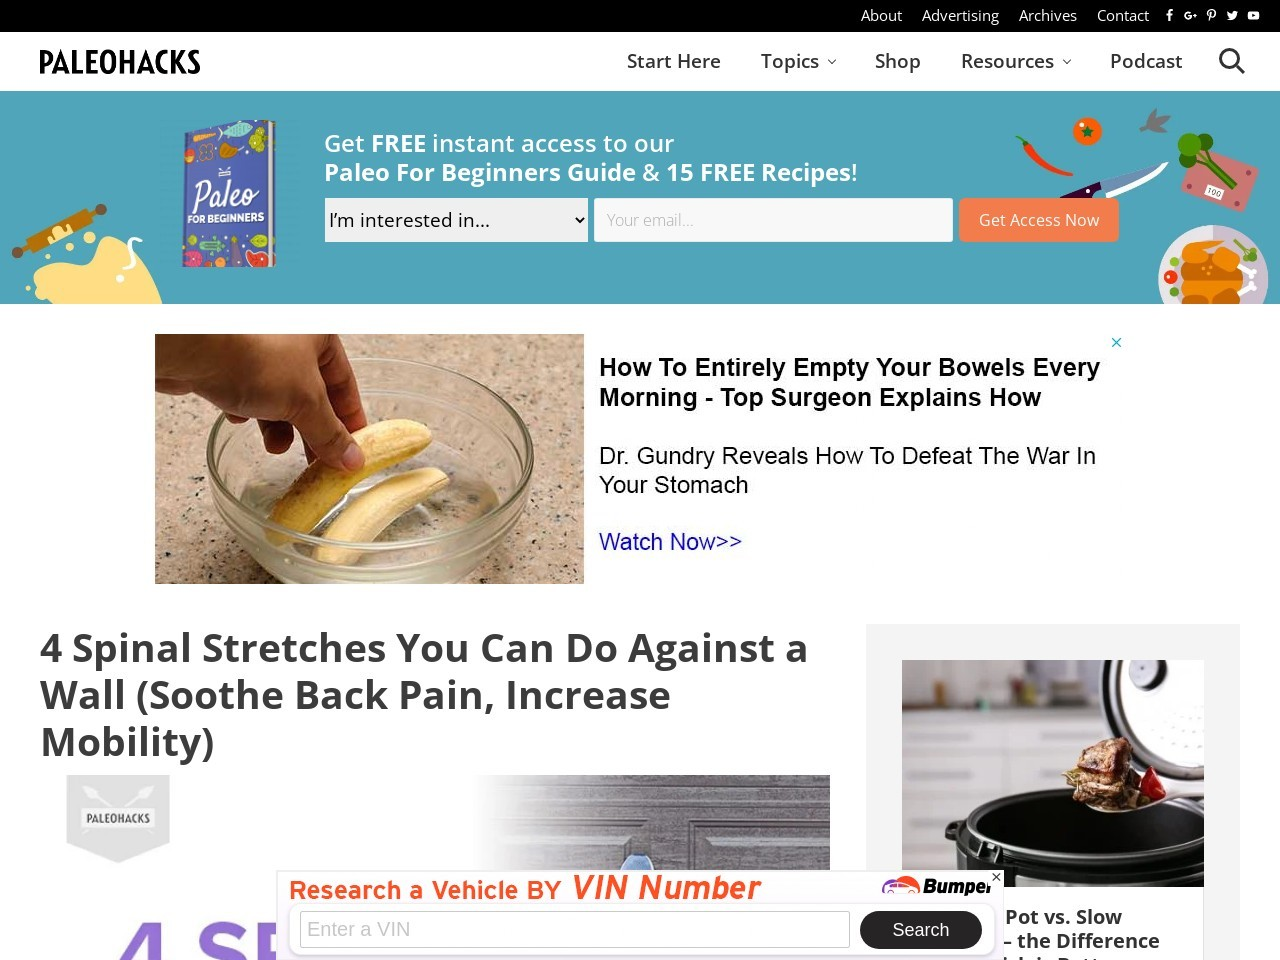 4 Spinal Stretches You Can Do Against a Wall (Soothe Back Pain, Increase Mobility)